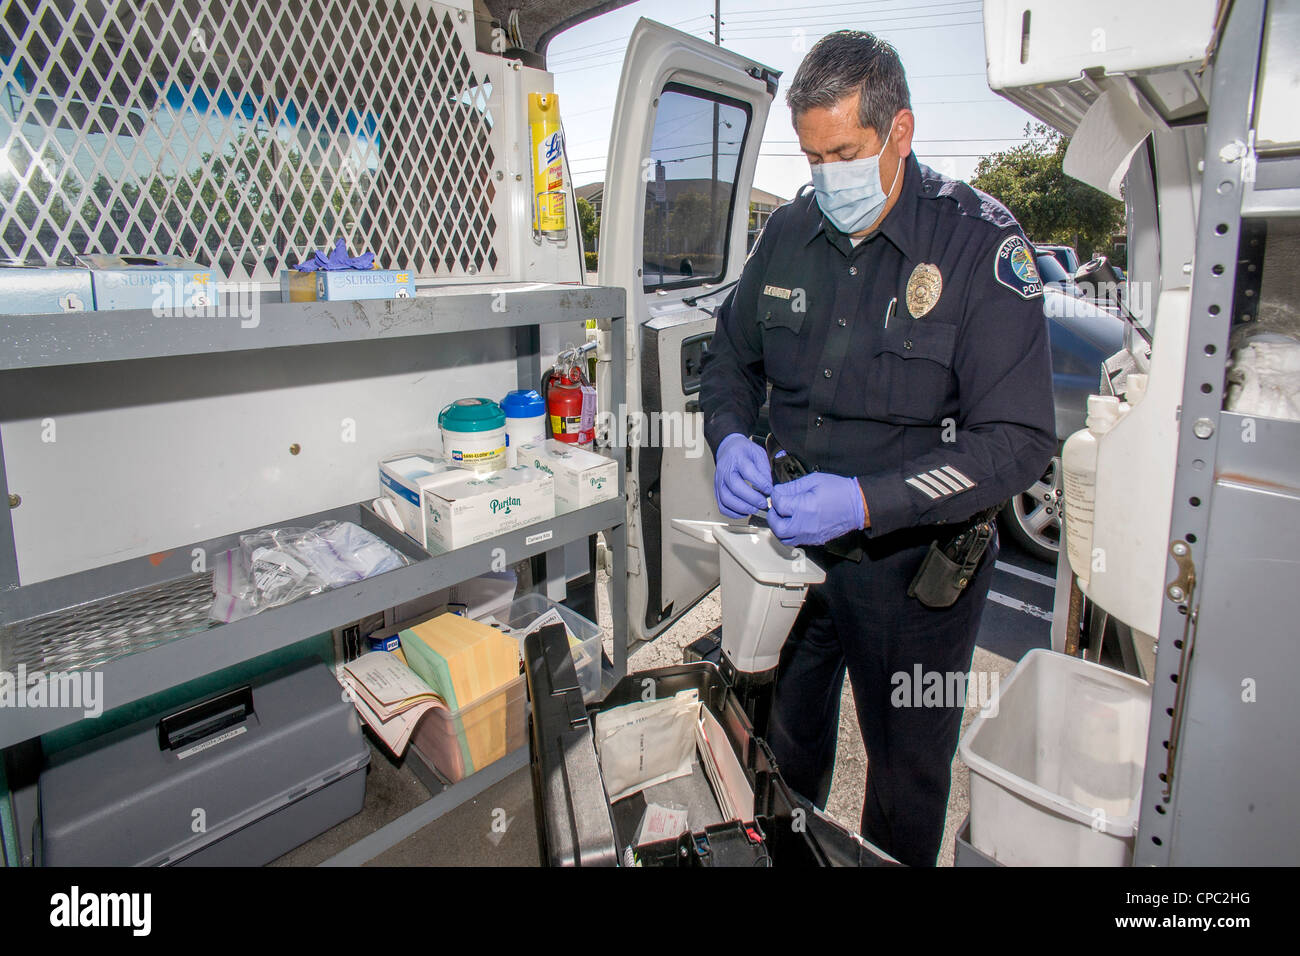 In his official van in Santa Ana, CA, a Hispanic police officer prepares a scent transfer unit at a crime scene. - Stock Image